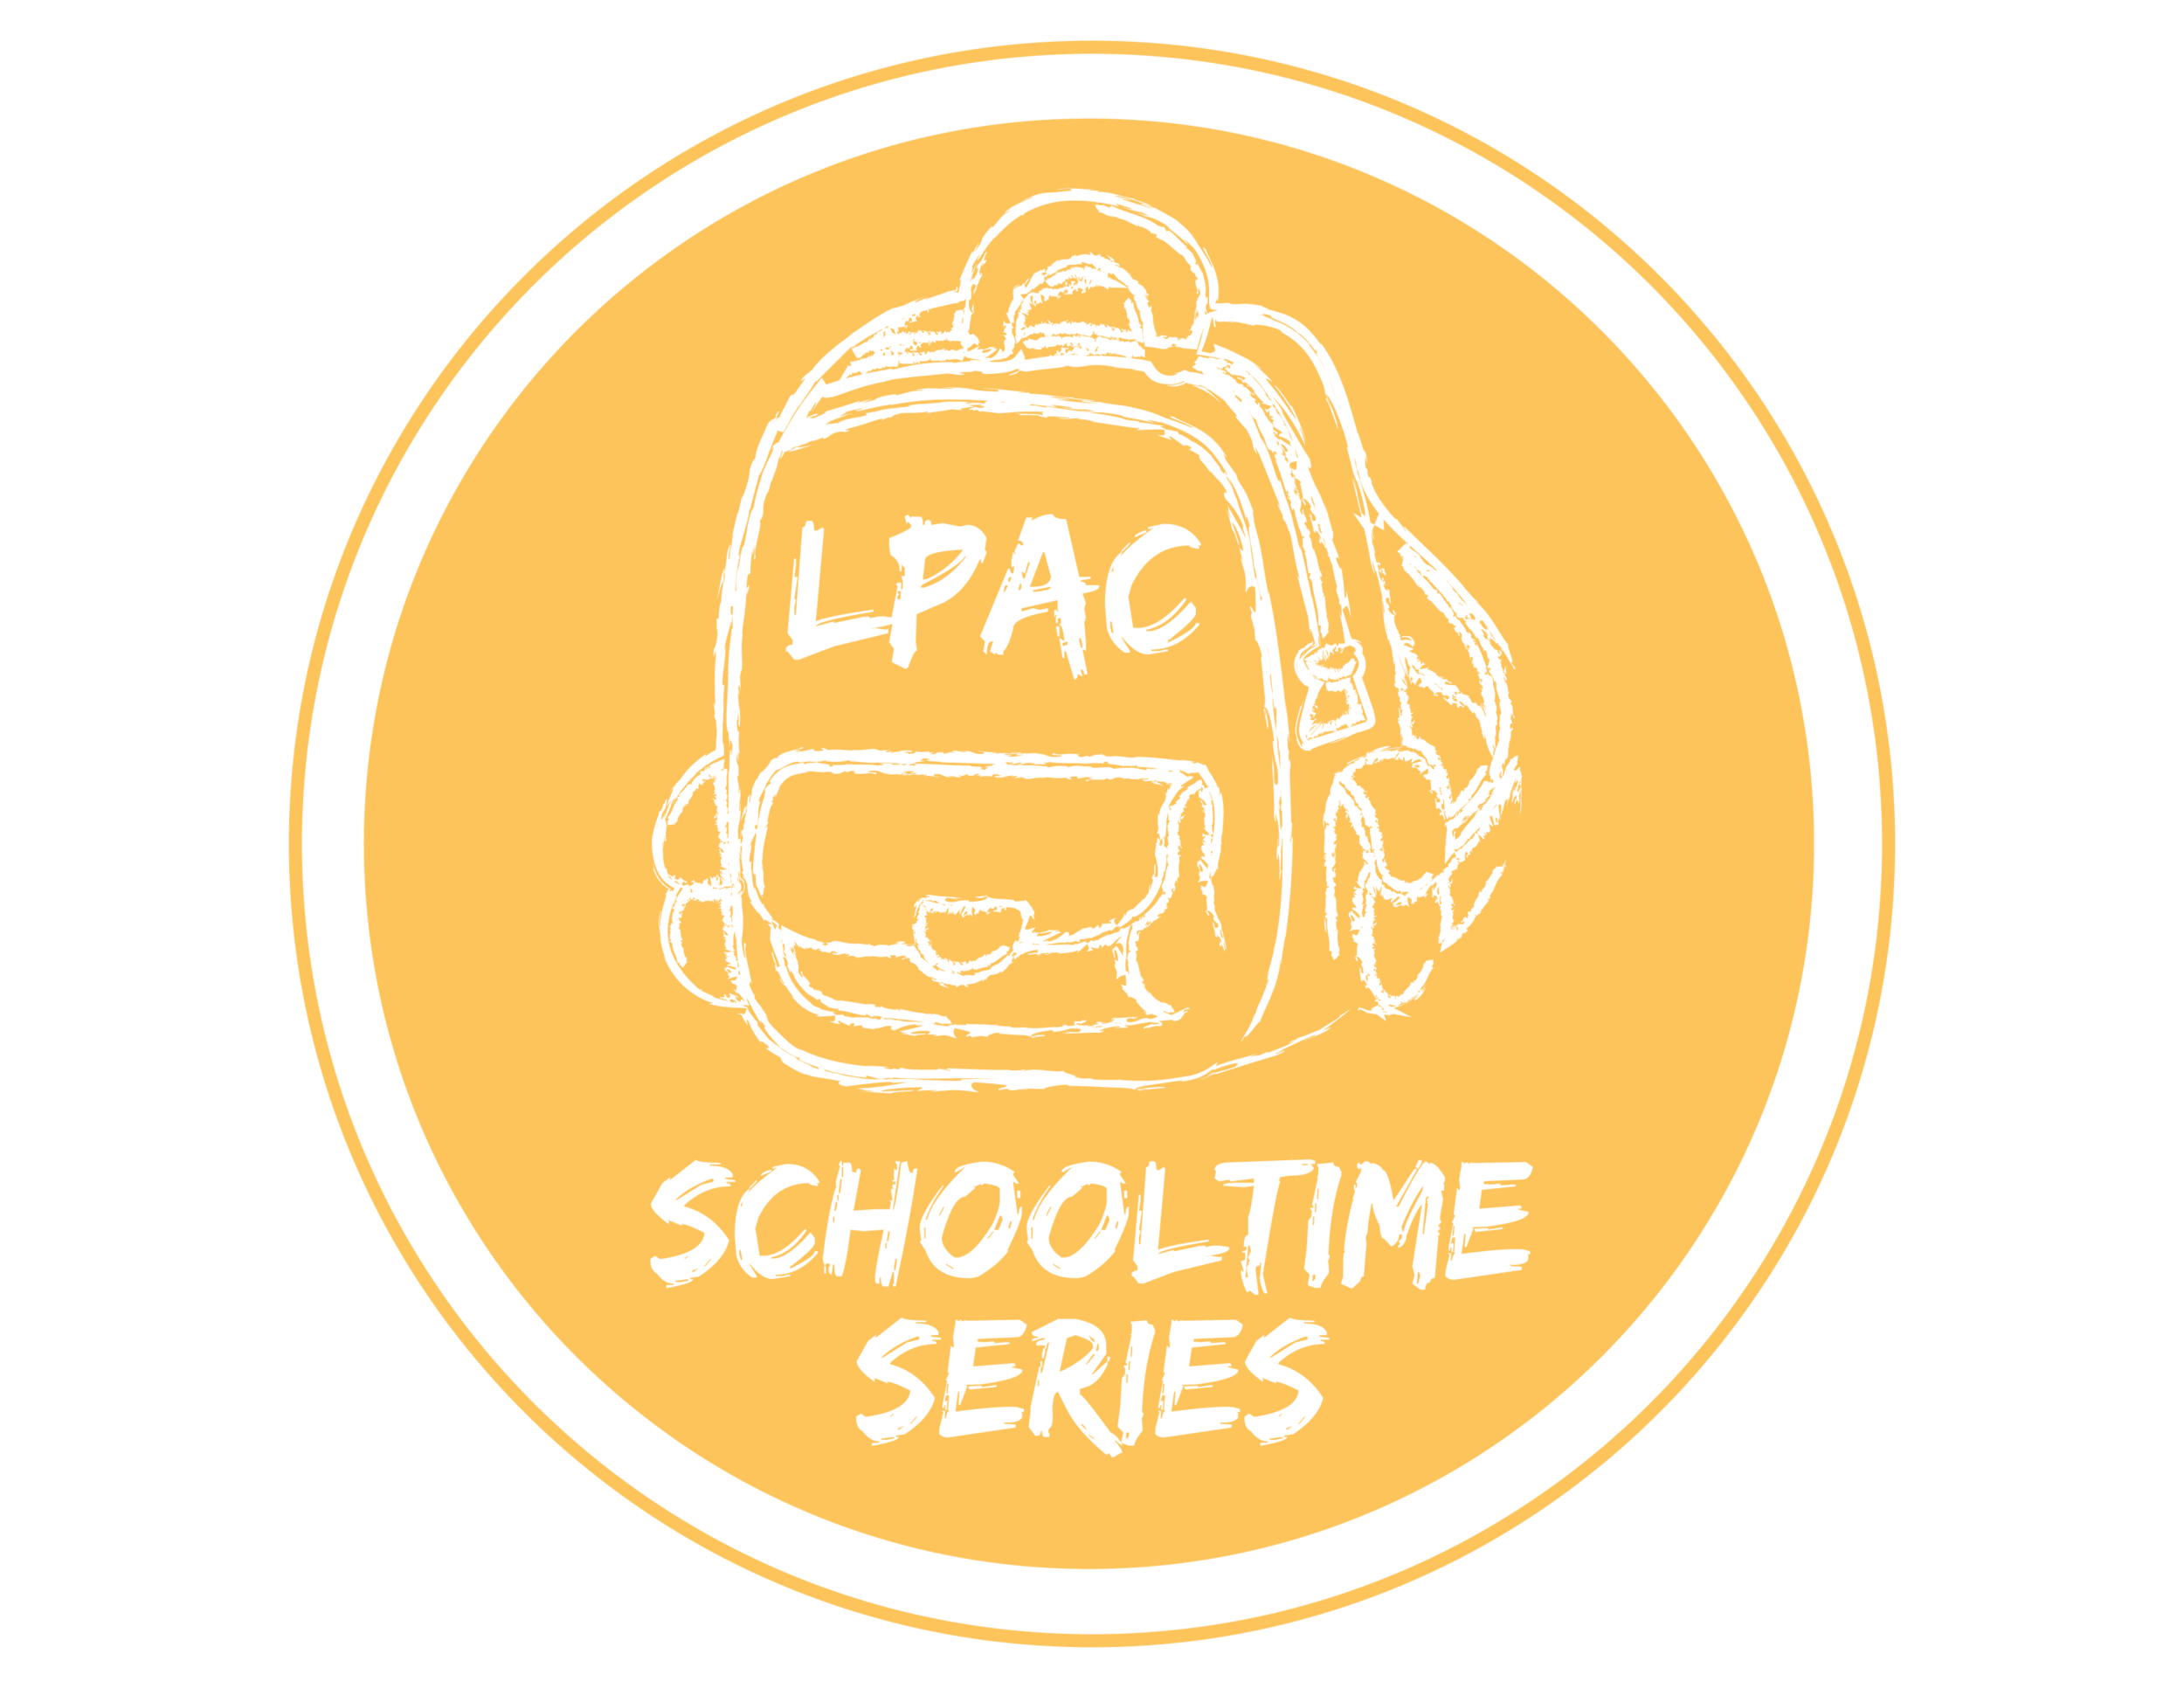 Schooltime_Logo_Final.png